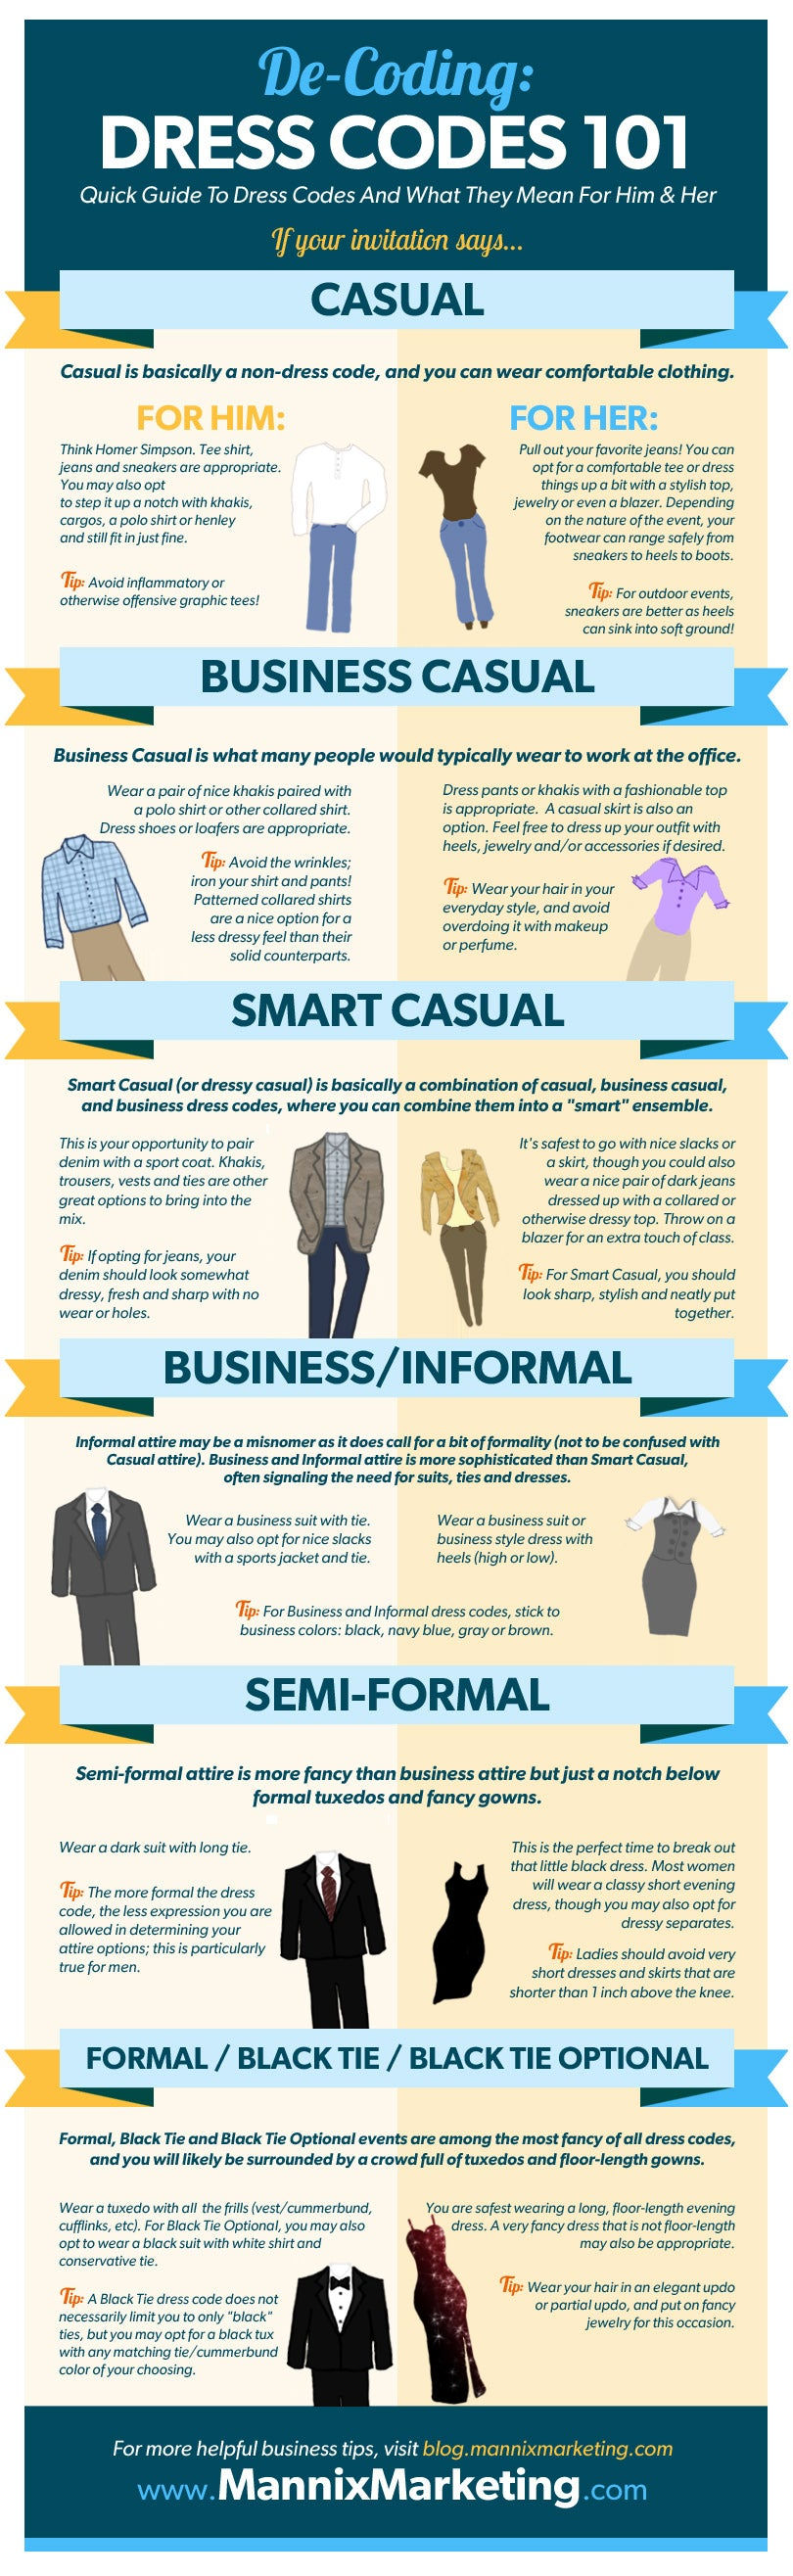 Dress code for smart casual smart casual dress code for men pictures - Can You Guess The Largest Companies By Revenue In Each State Infographic